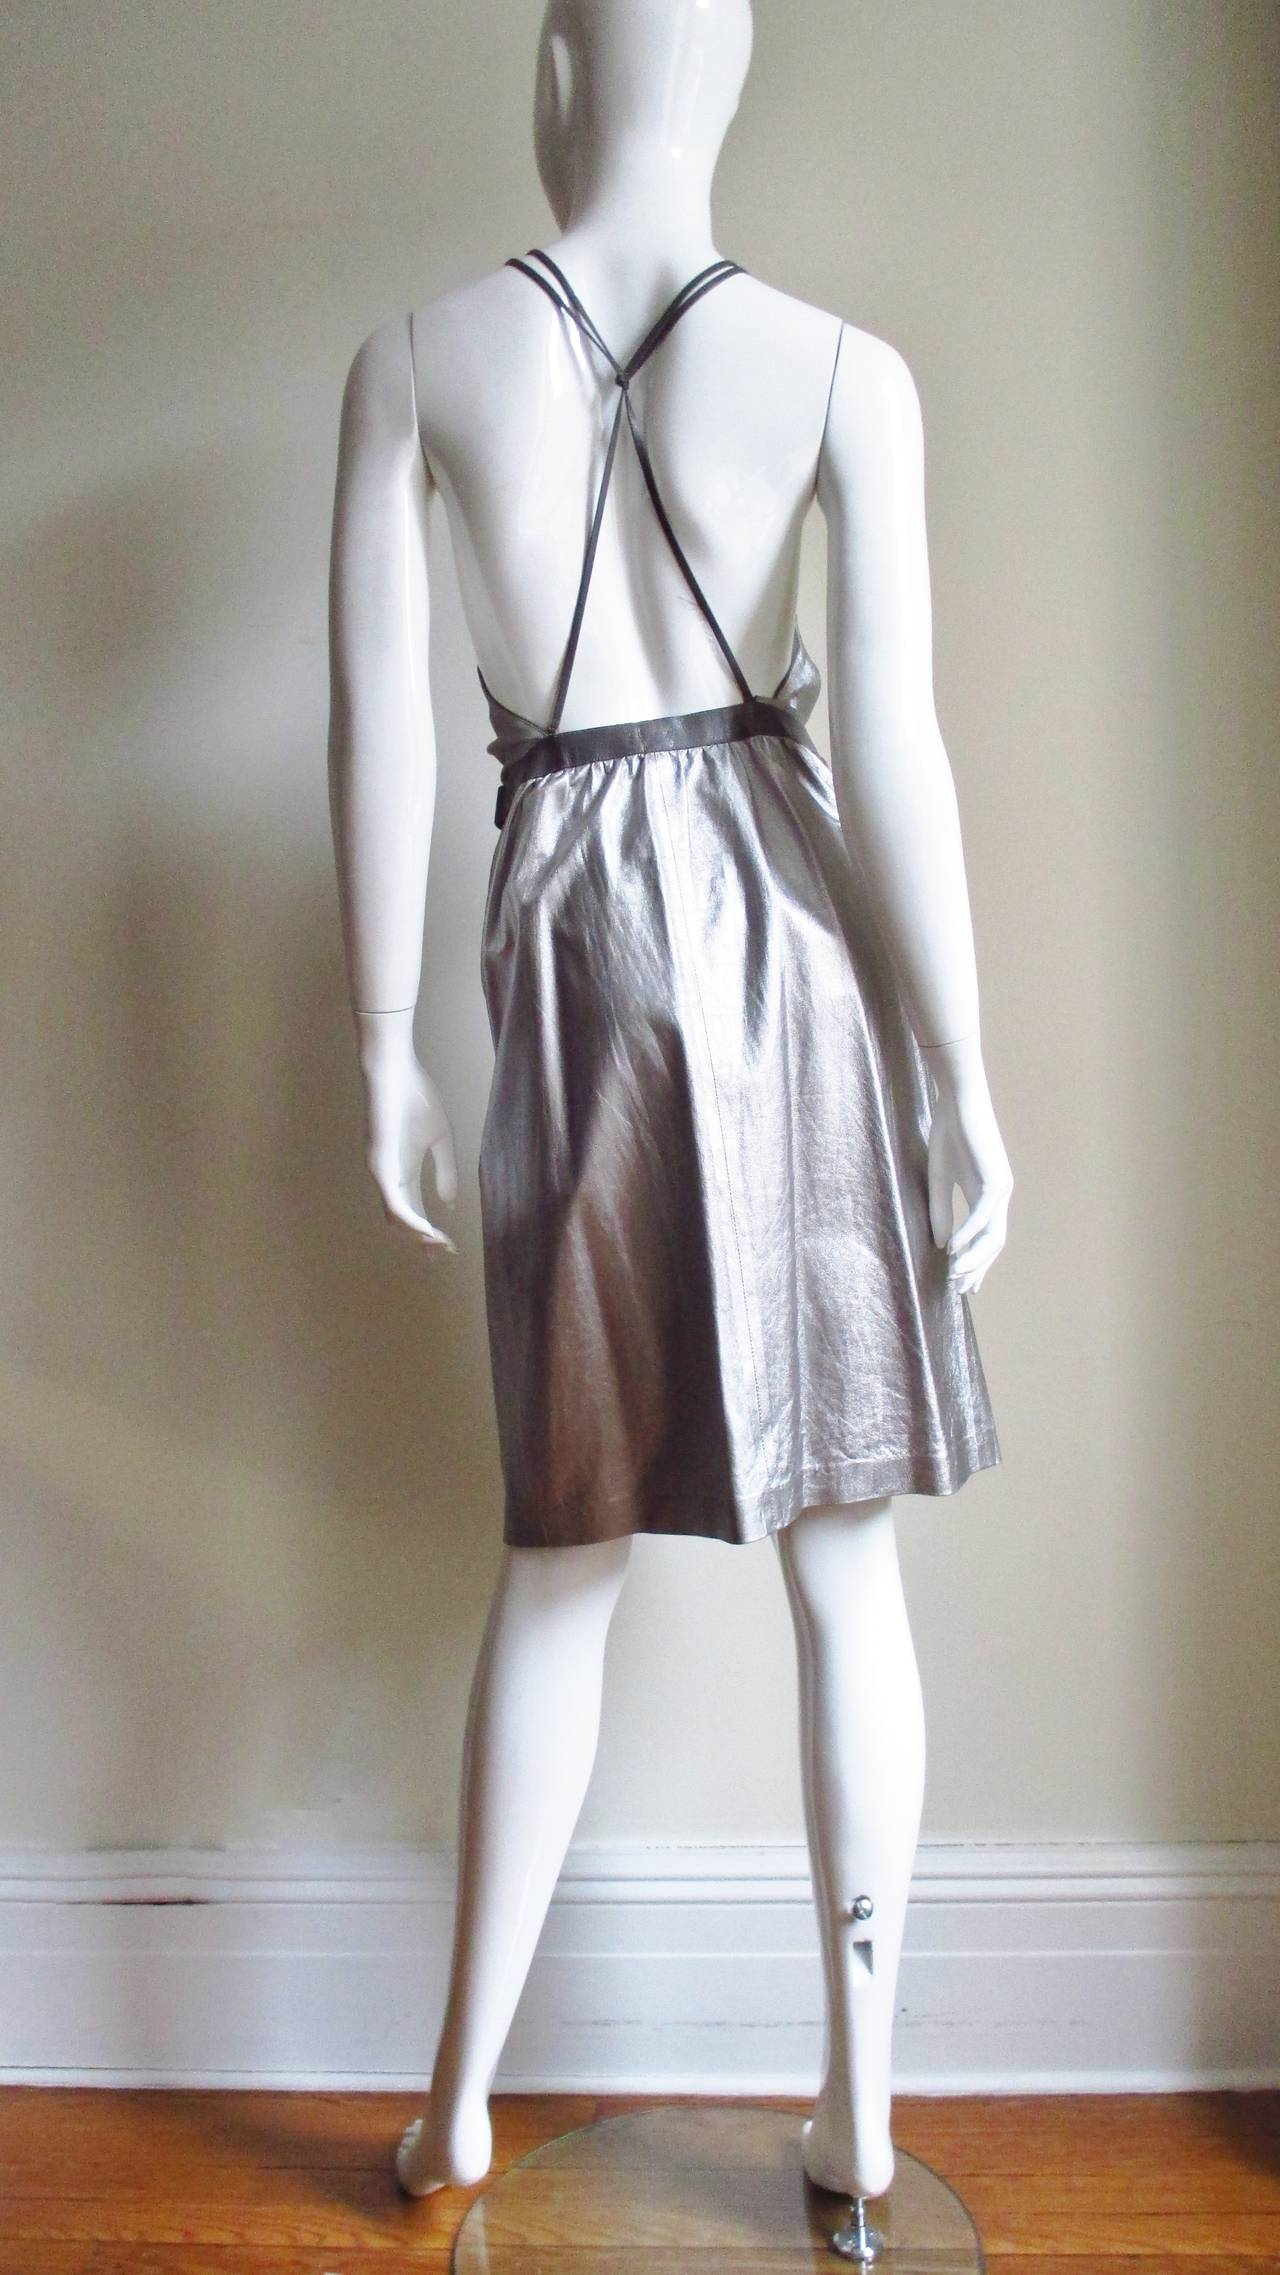 Tom Ford Gucci Silver Leather Backless Wrap Dress 7